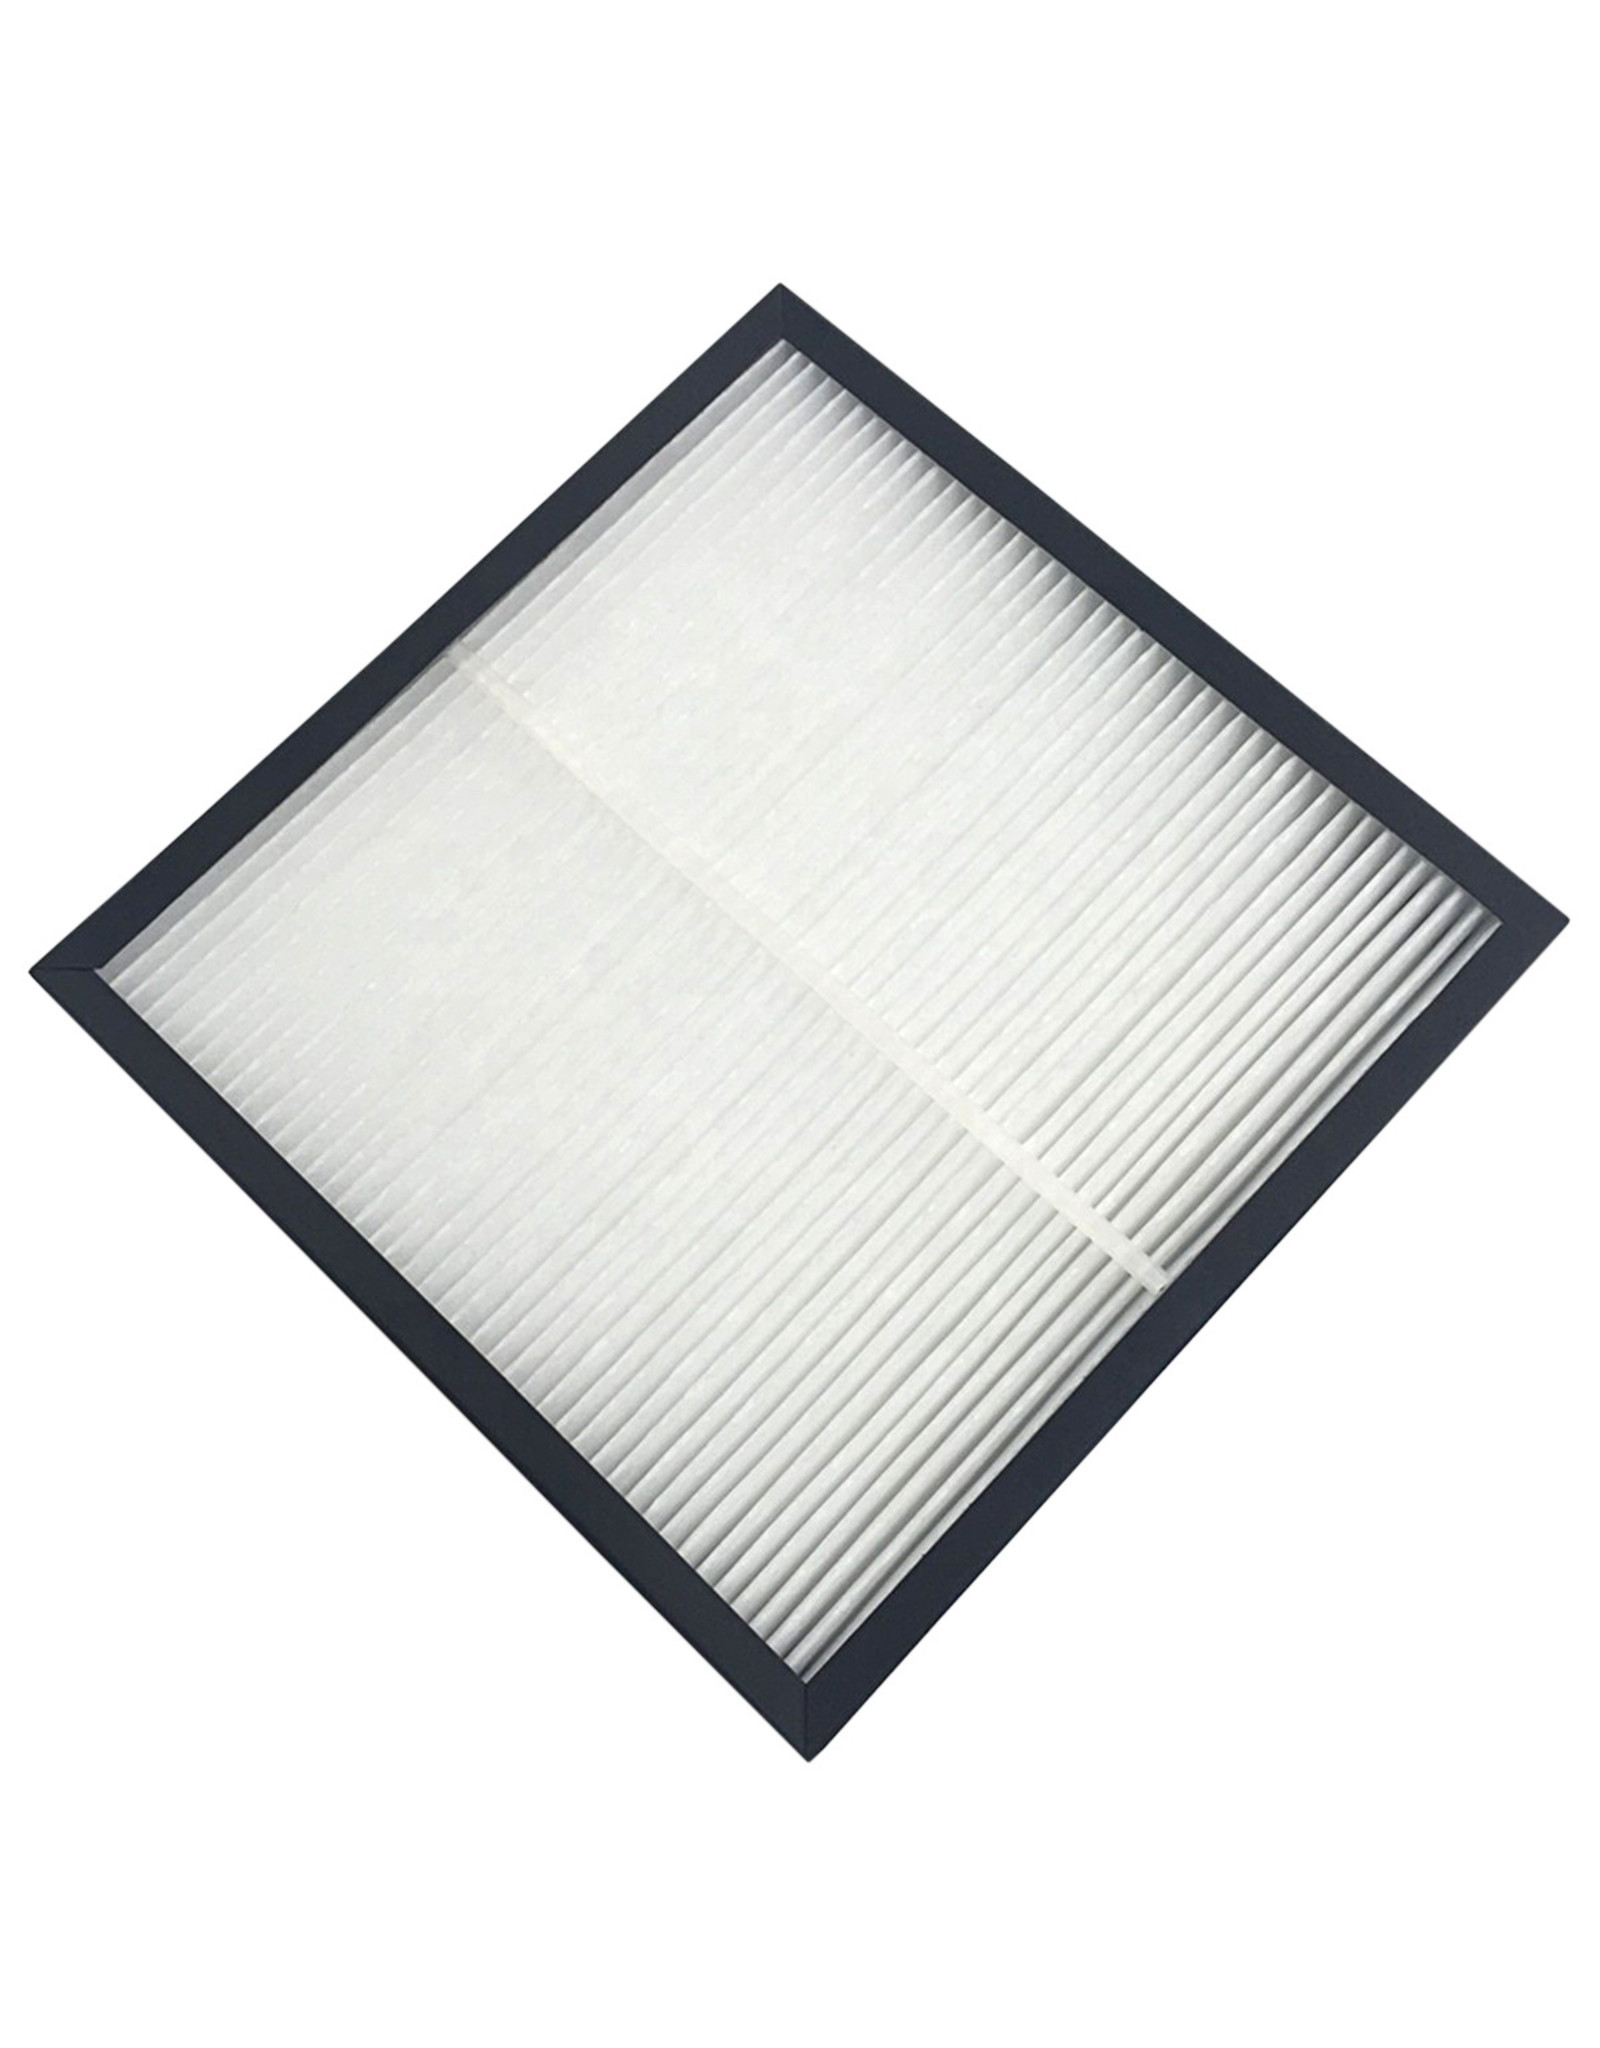 Mega Beauty Shop® Filter voor stofafzuiger MBS-FX-23